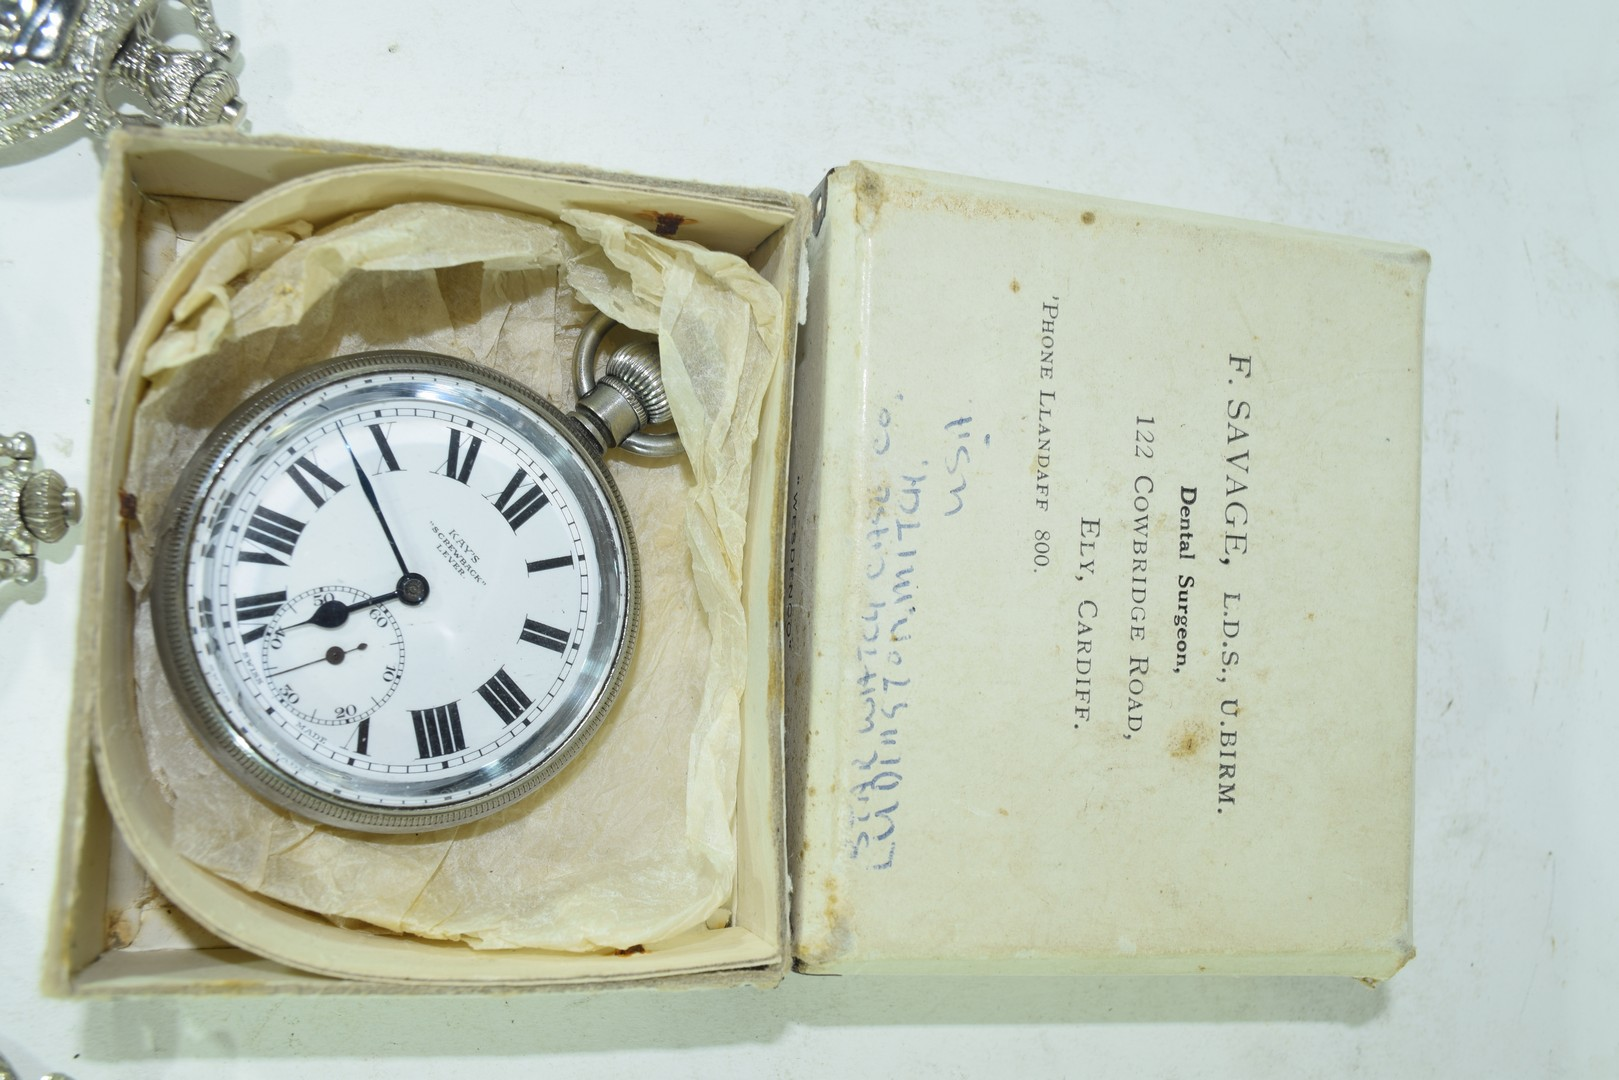 Cays screwback lever pocket watch - Image 2 of 4